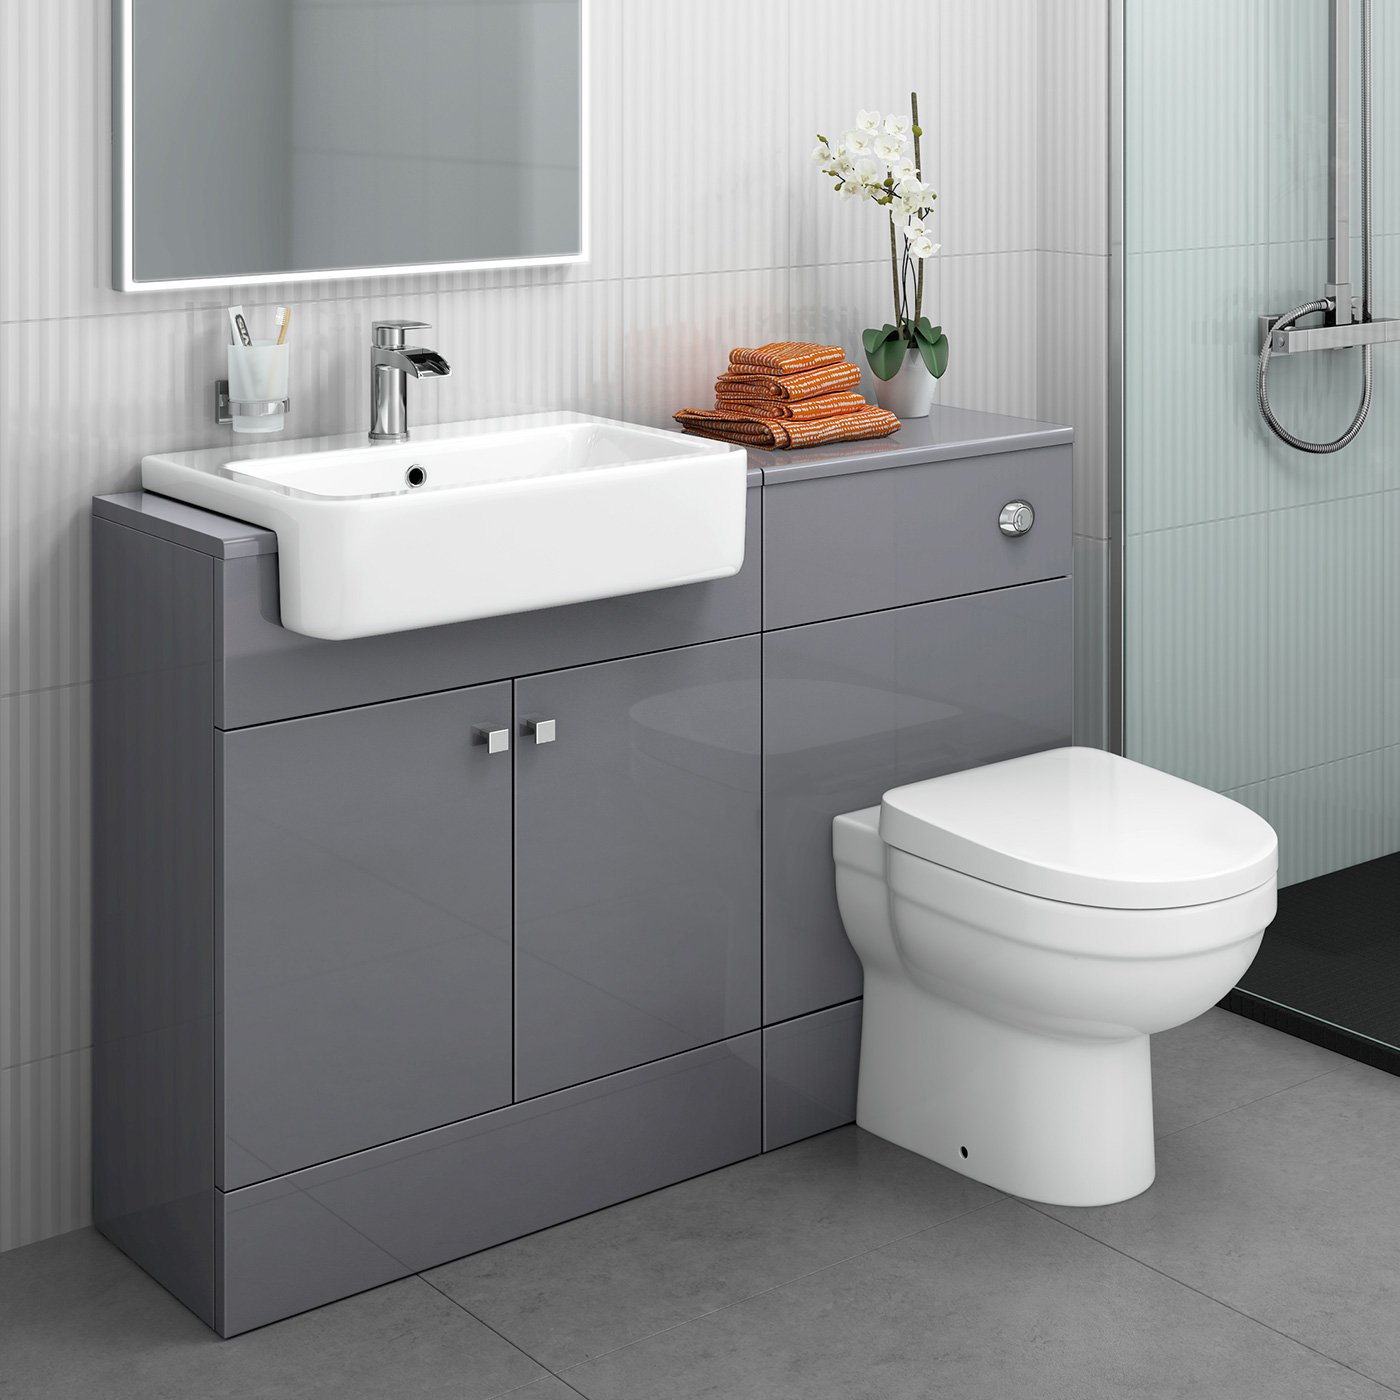 above next awesome com hanging indusperformance cabinets corner cabinet toilet inspirational storage furniture of bathroom